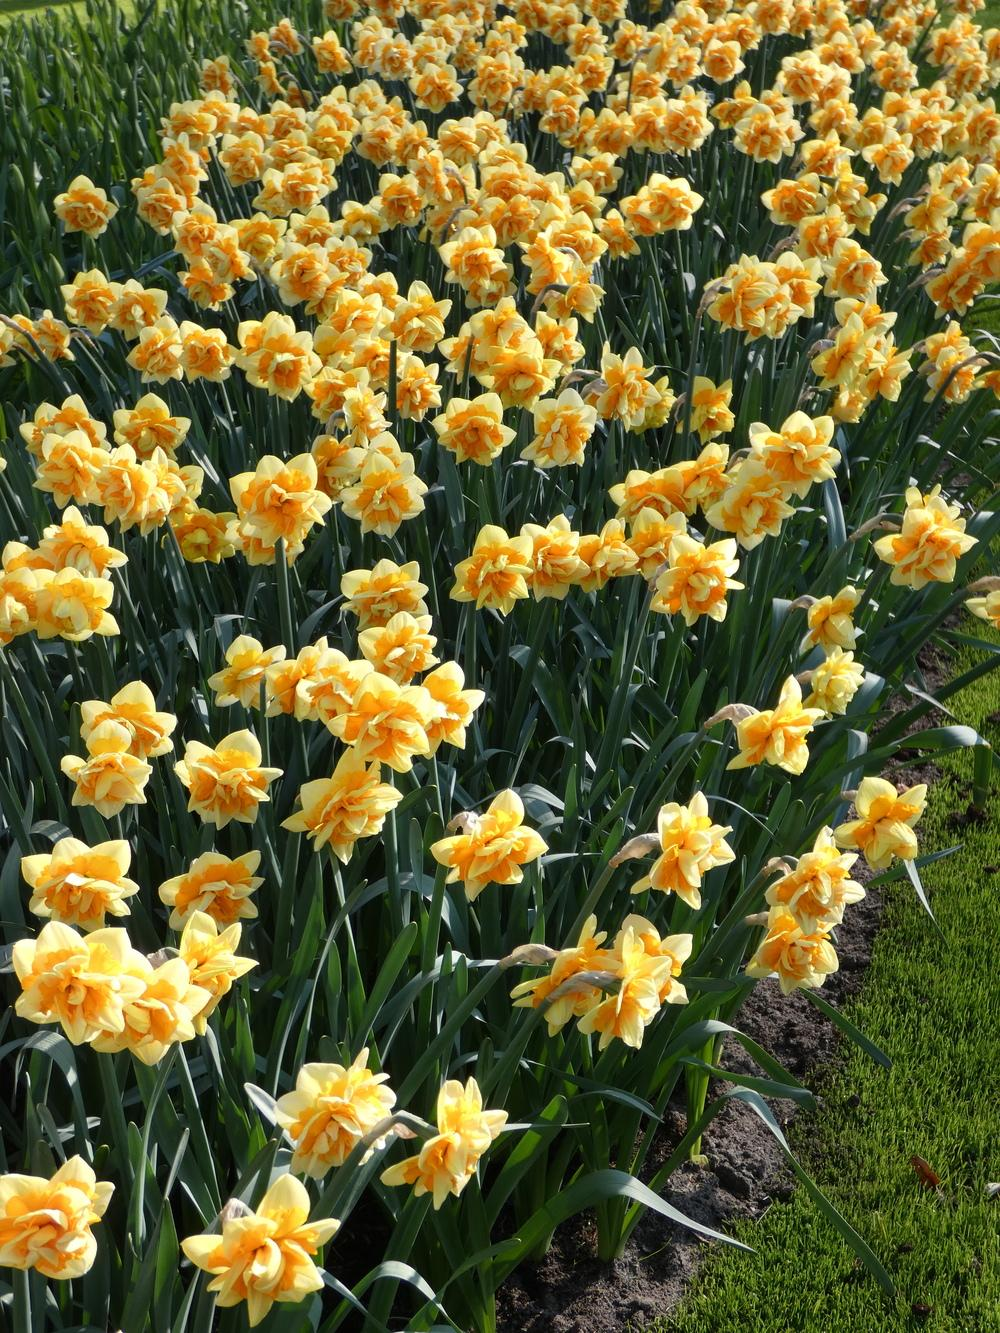 Photo of Double Daffodil (Narcissus 'Jersey Star') uploaded by mellielong